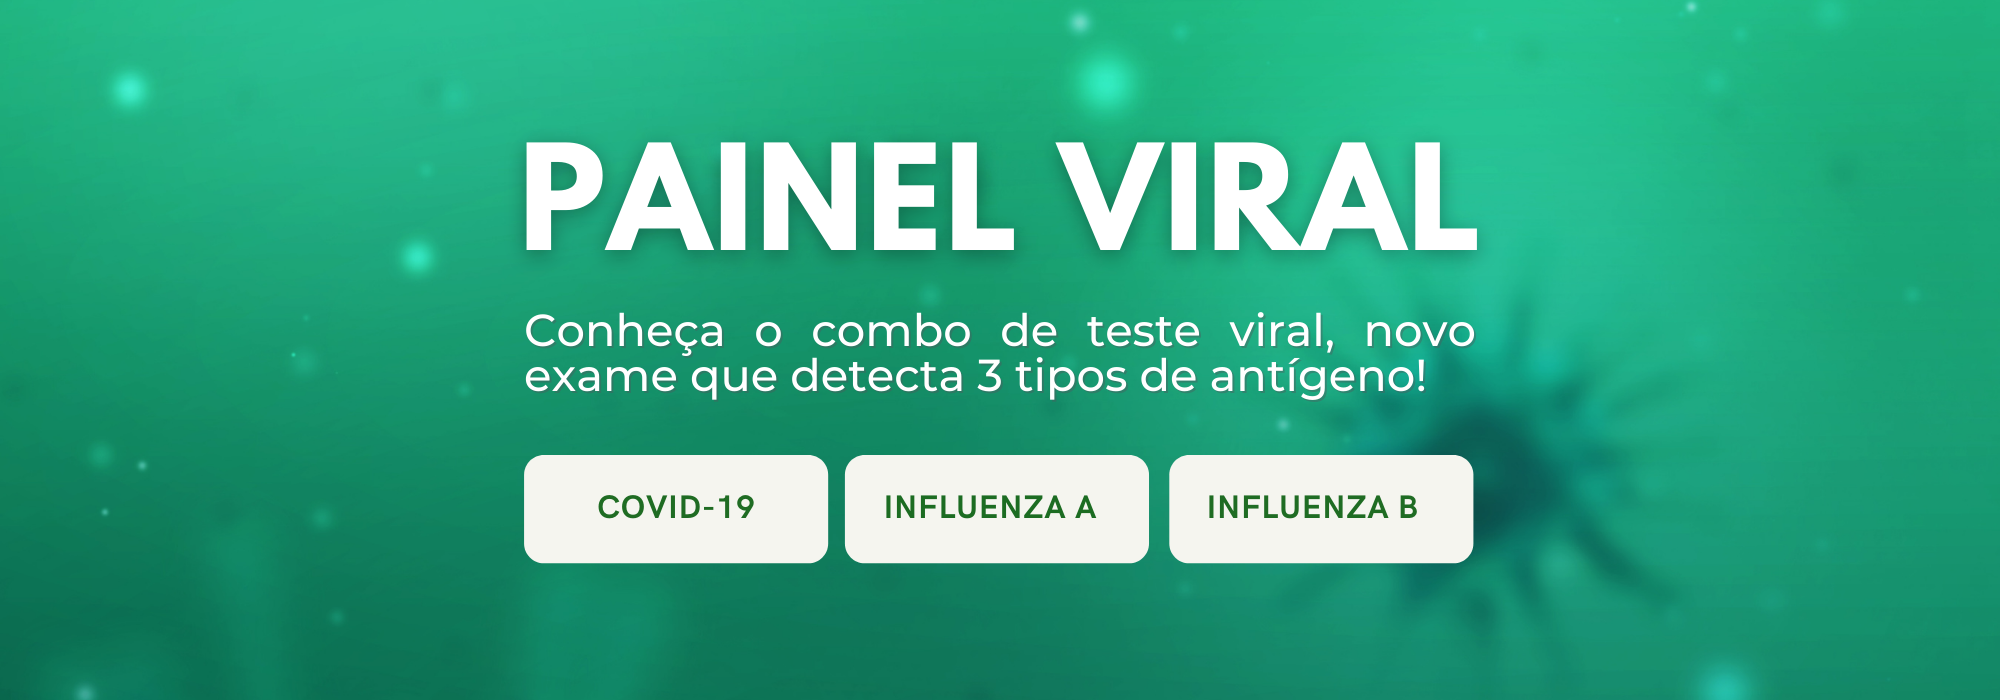 PAINEL VIRAL